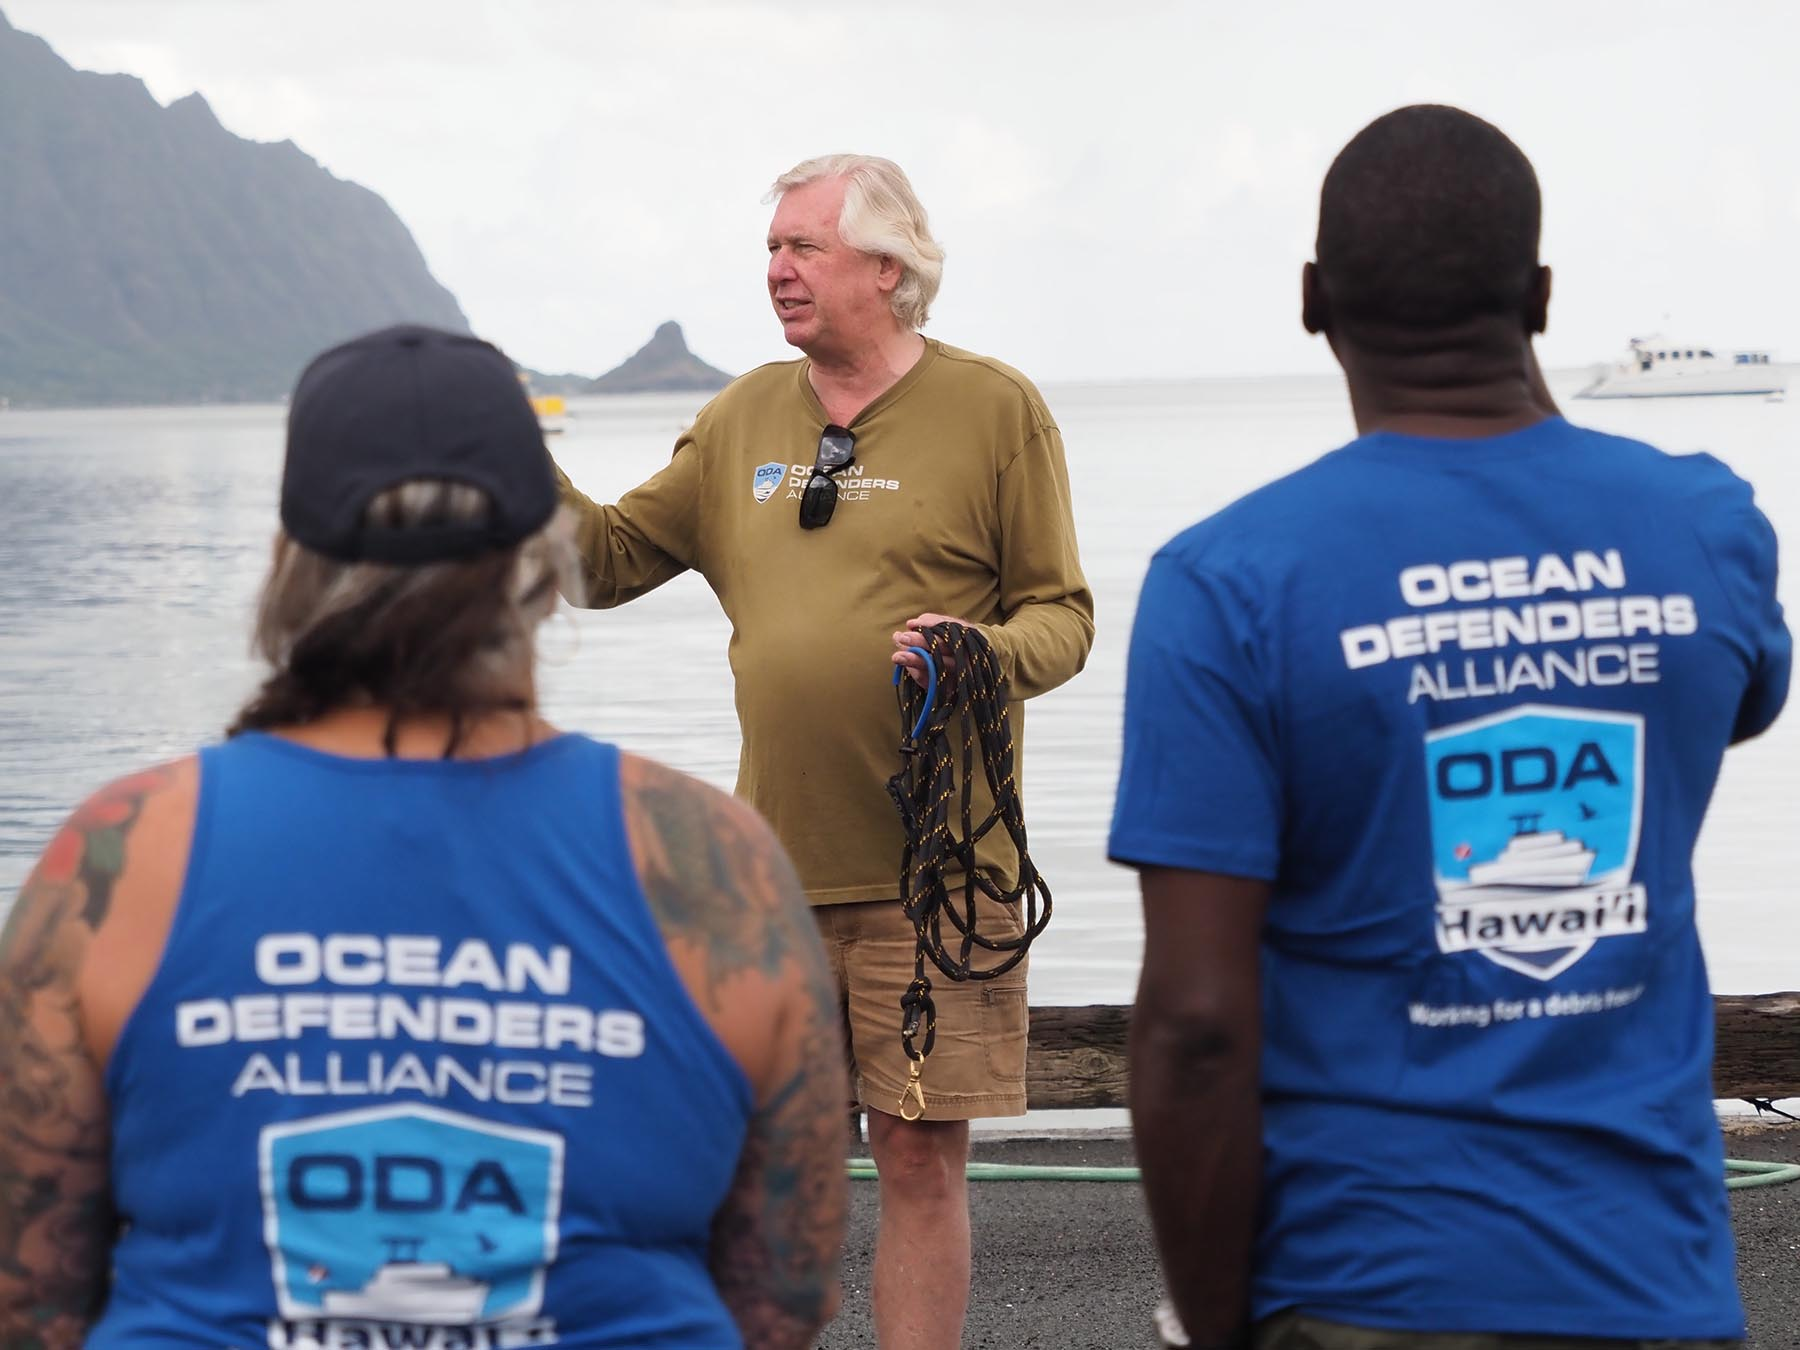 <p>Kurt Lieber, president and founder of the nonprofit Ocean Defenders Alliance, explains procedures for removing tires and debris from the sea floor. Volunteers split up into two crews working below and above the water. Lieber says the abandoned tires contain over 100 chemicals that leach into the water over time.</p>